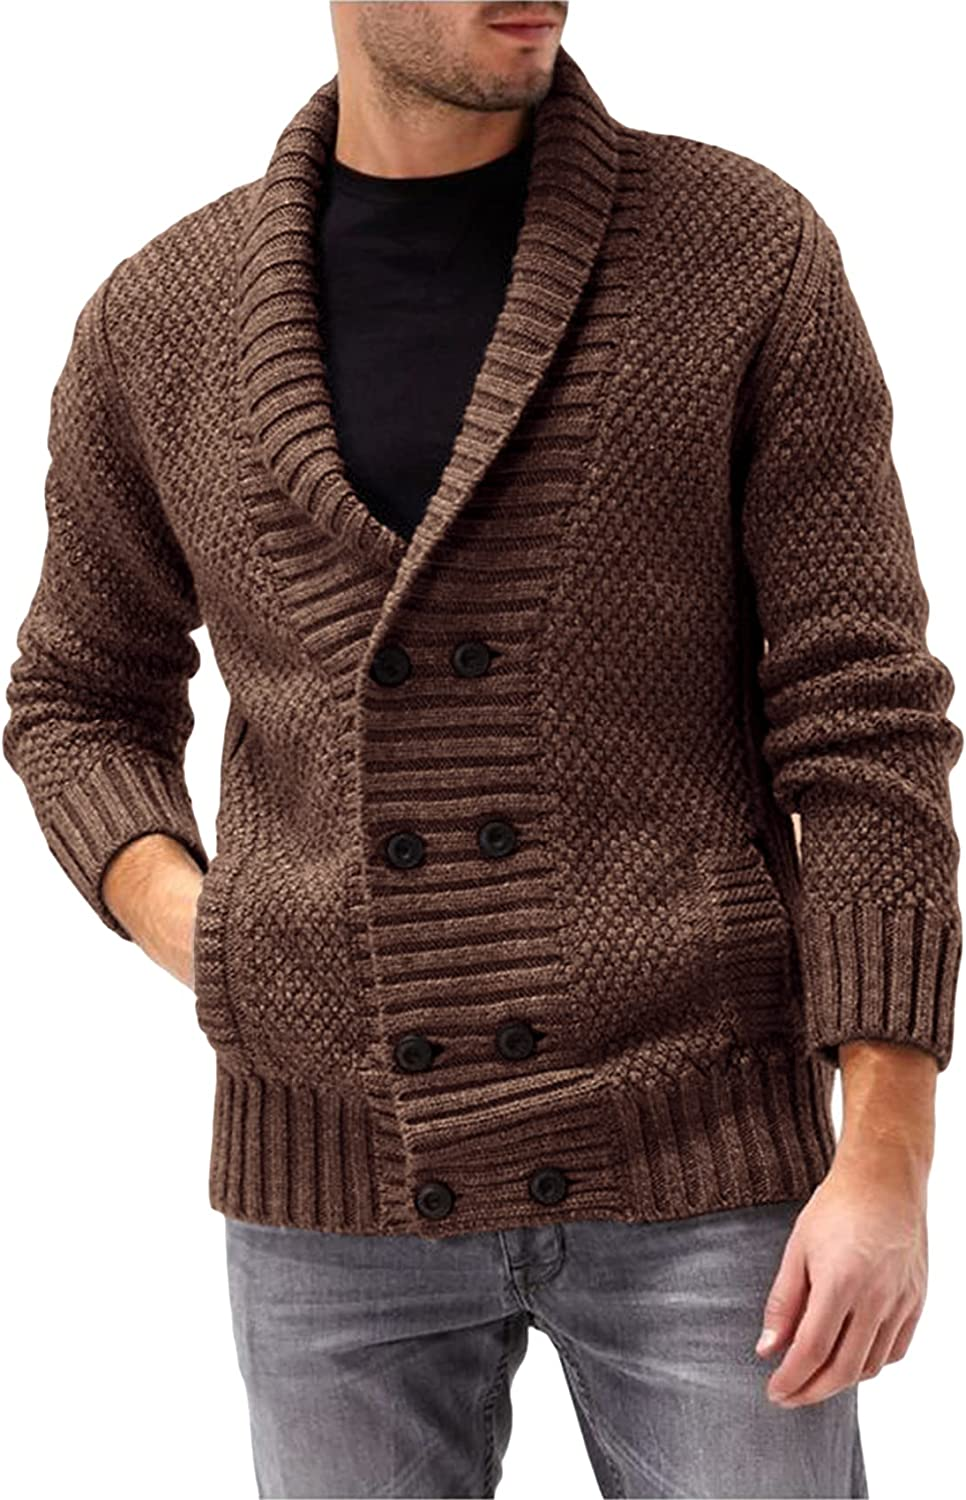 Men's Cable Knit Cardigan Casual Shawl Collar Sweater Double Breasted Knitted Loose Fit Long Sleeve Cardigans